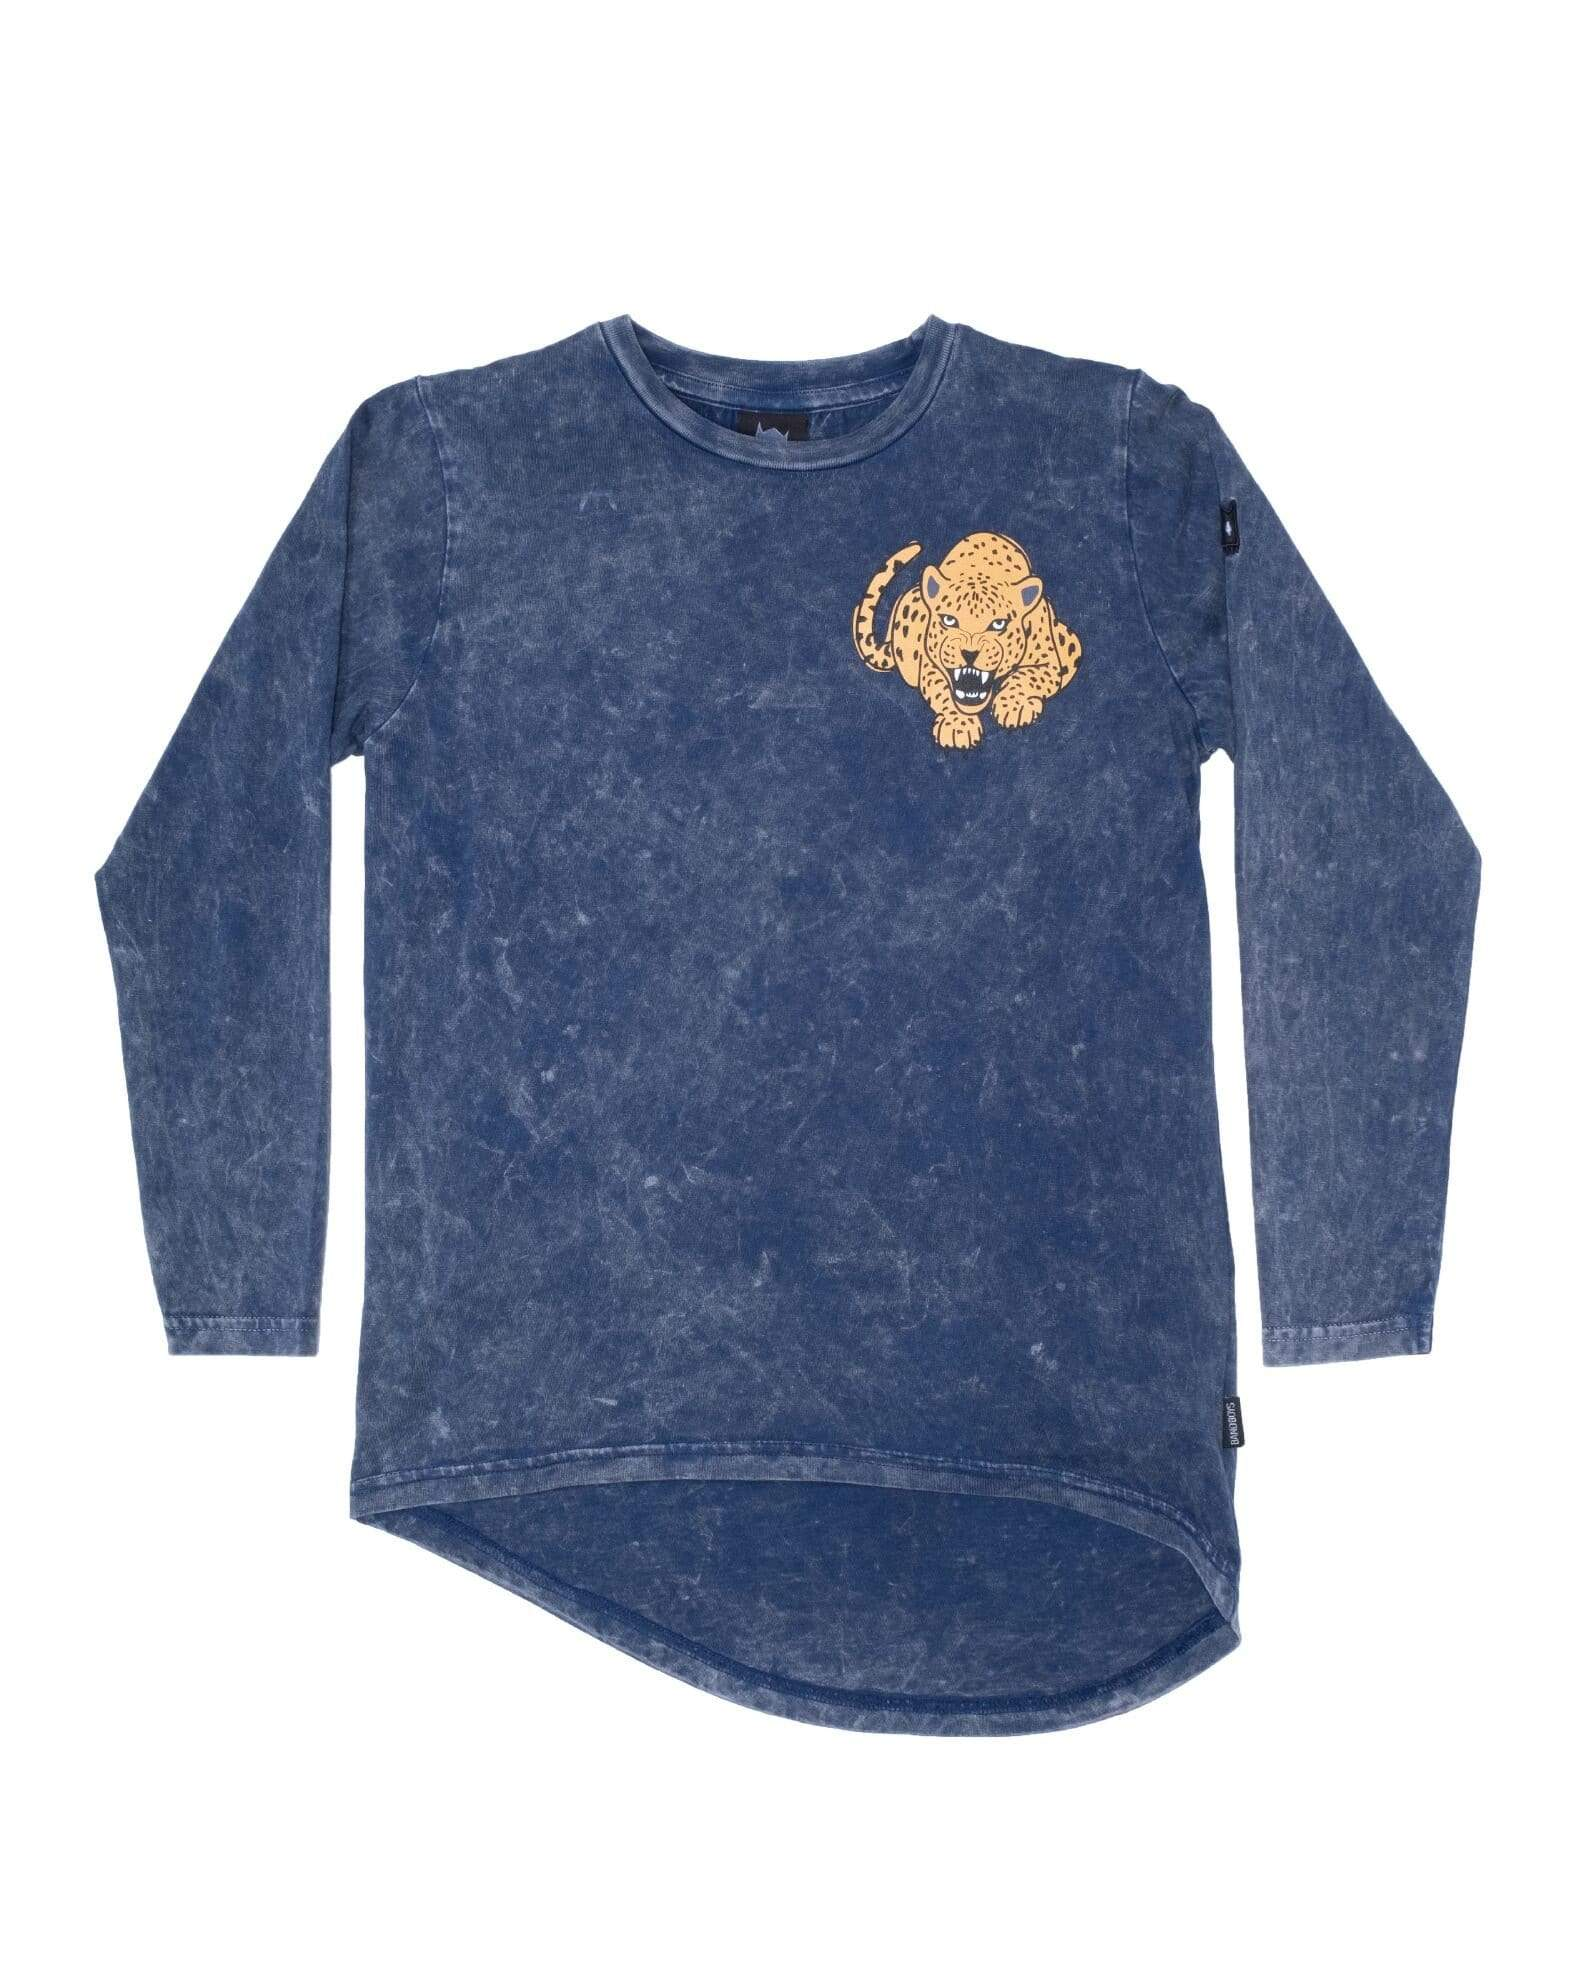 Band of boys T Shirt Fierce Leopard LS Tee - Vintage Blue